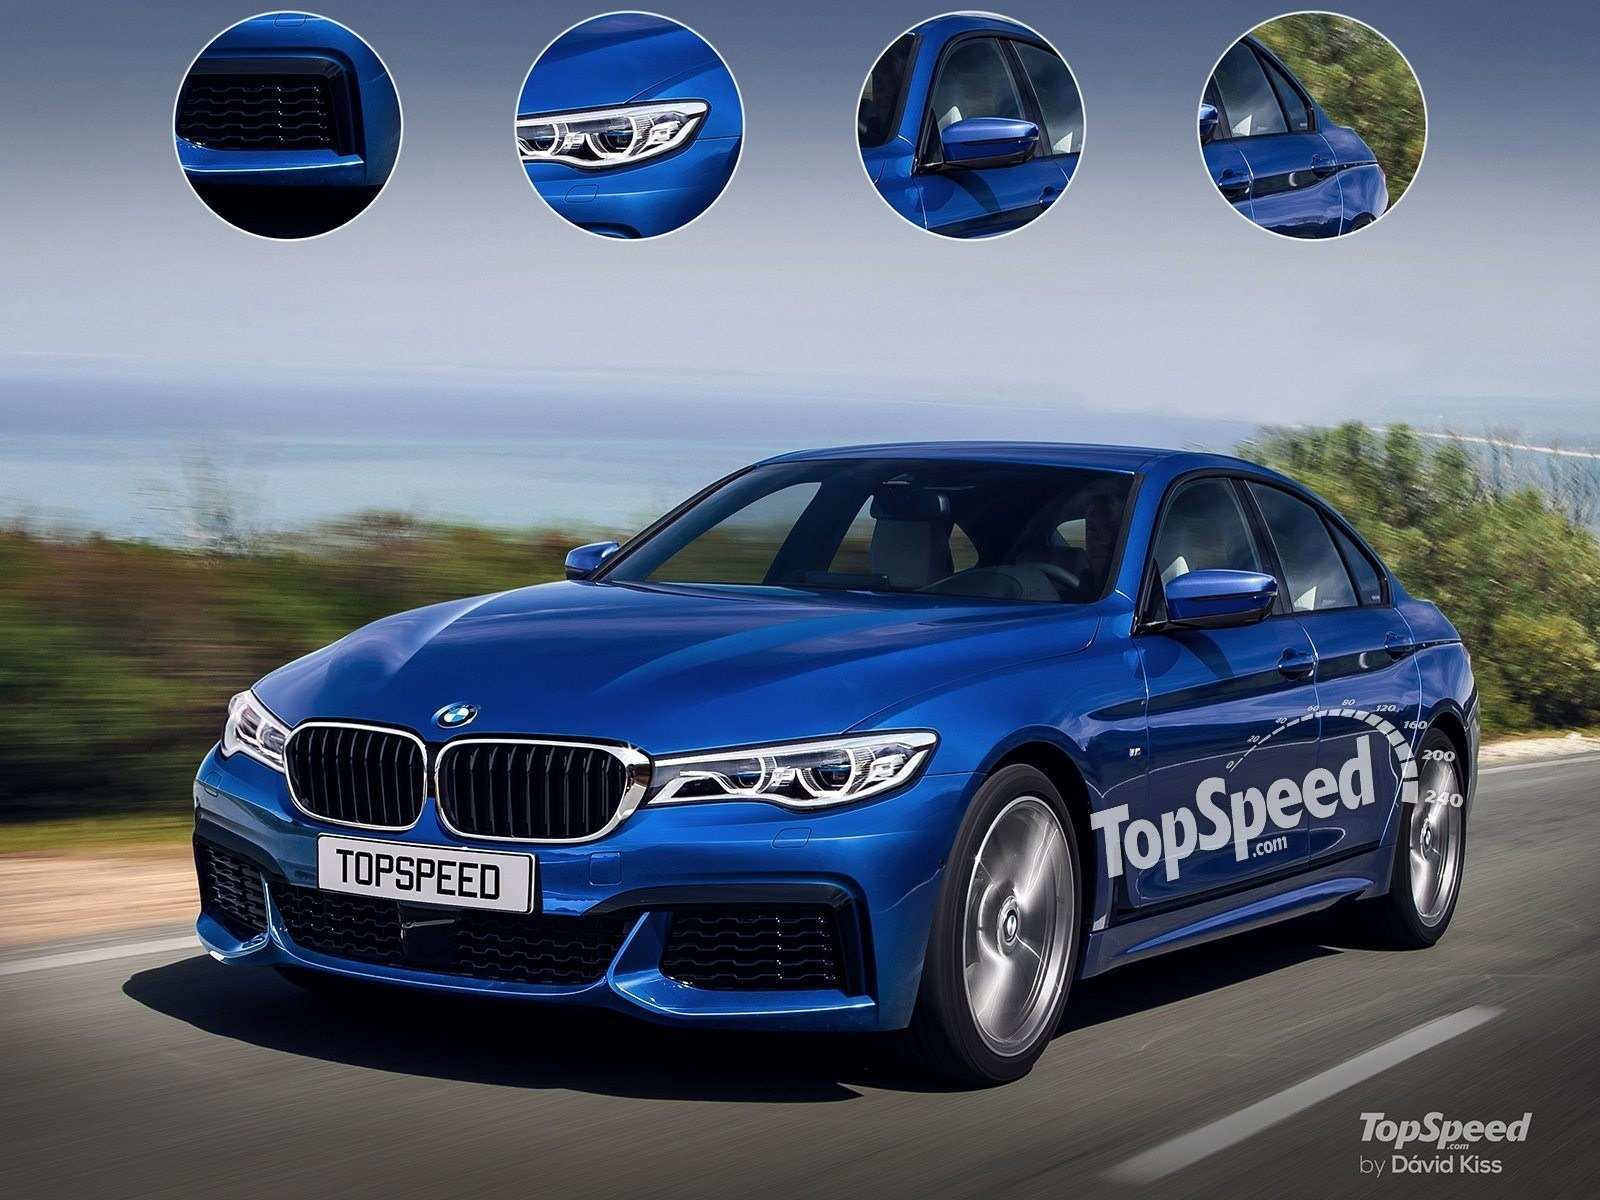 82 All New 2019 Bmw 3 Series Release Date Configurations by 2019 Bmw 3 Series Release Date